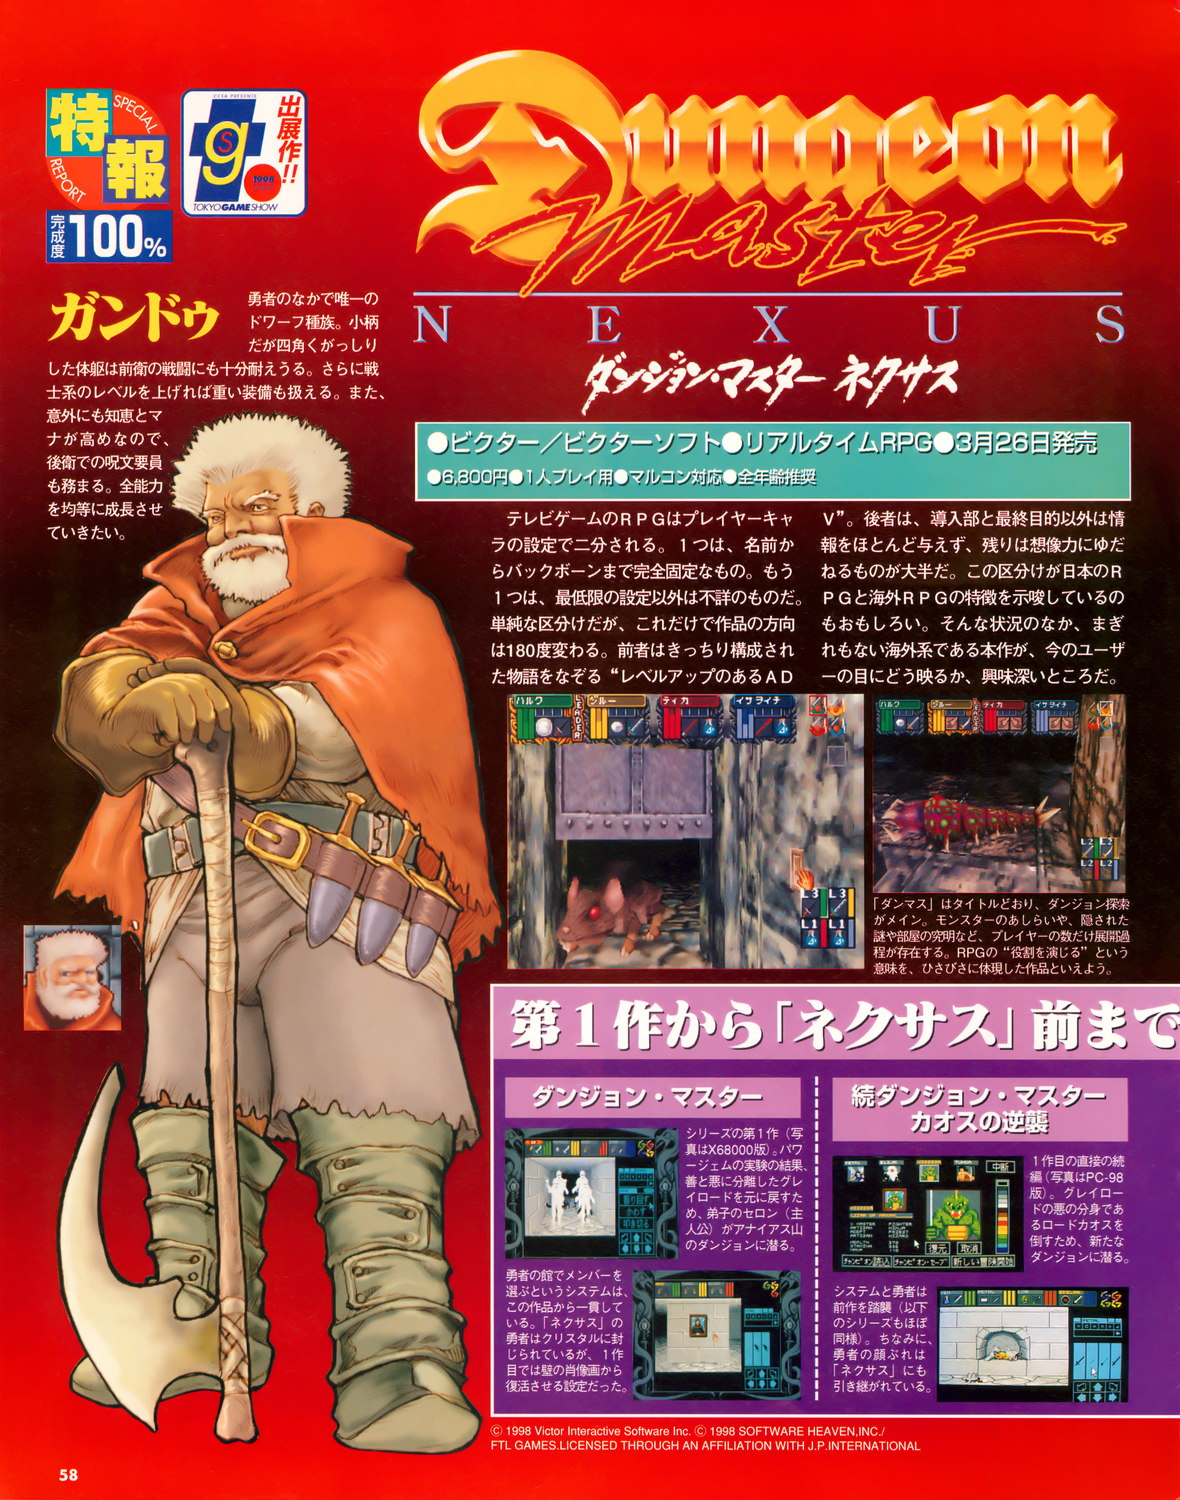 Dungeon Master Nexus Preview published in Japanese magazine 'Sega Saturn Magazine', Vol 9 27 March 1998, Page 58